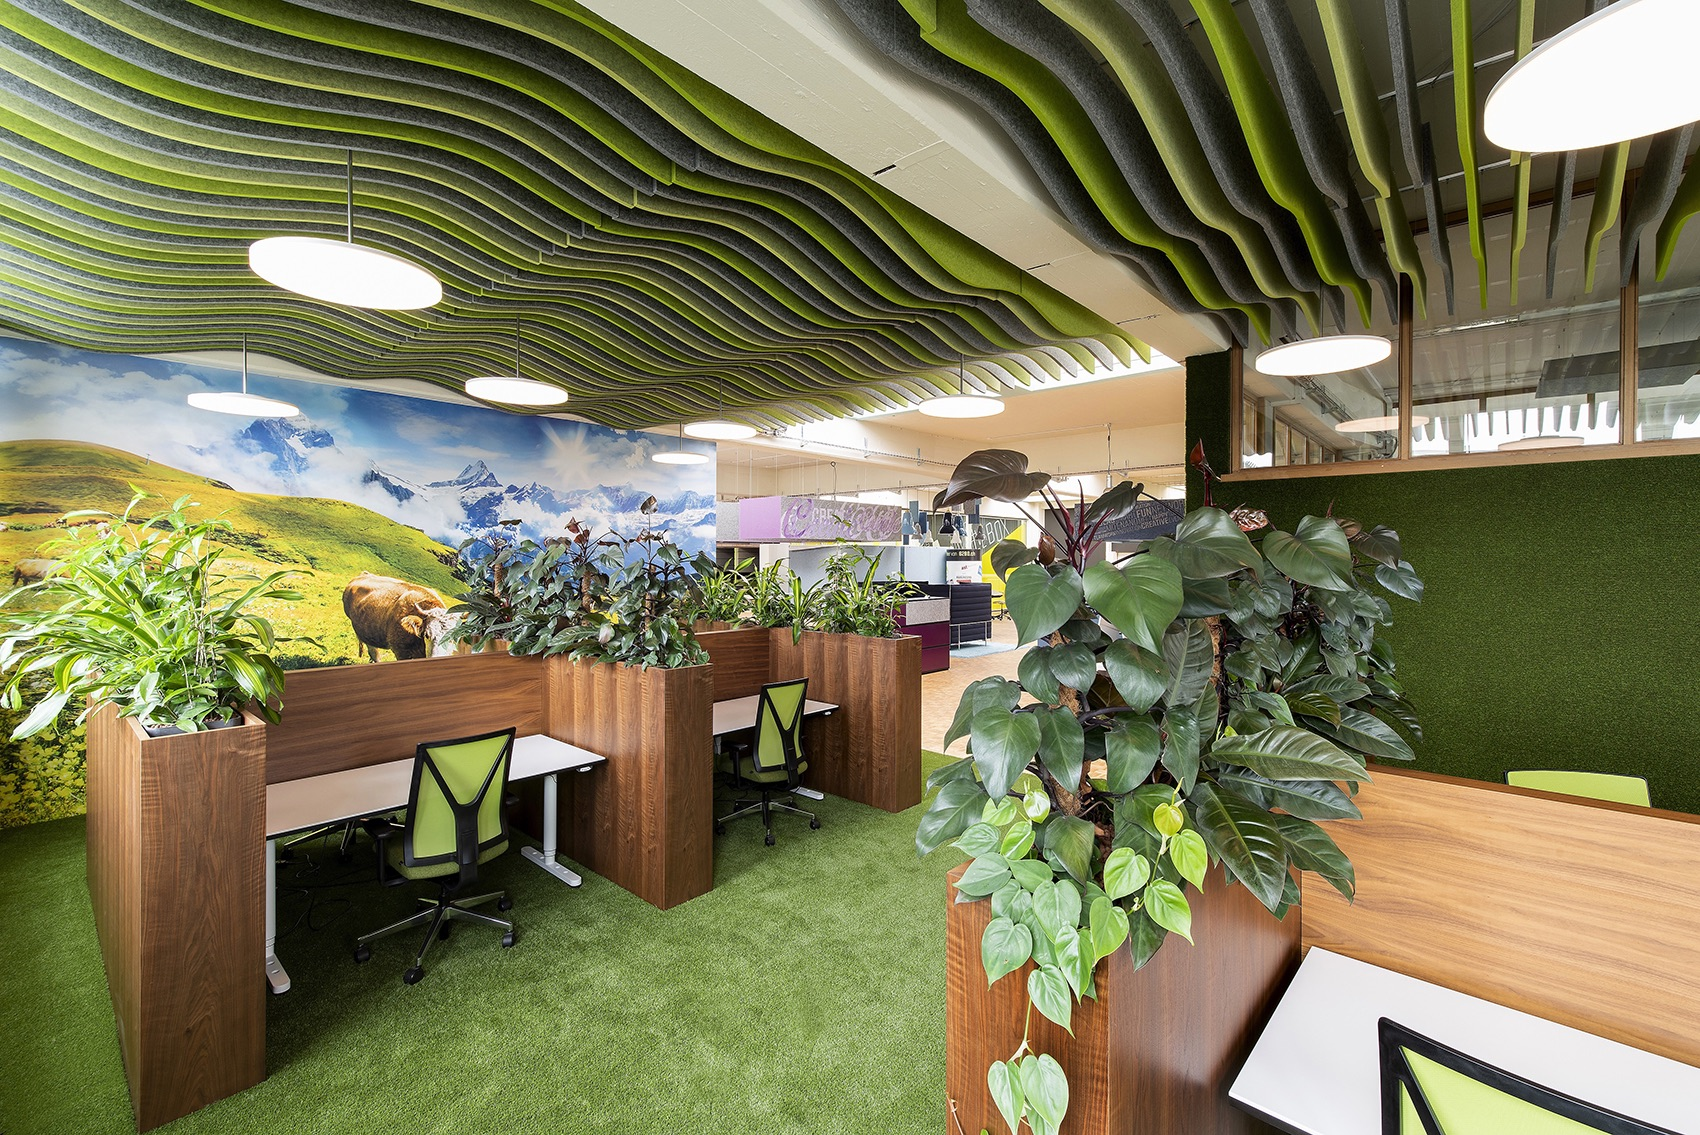 6280-coworking-switzerland-office-25